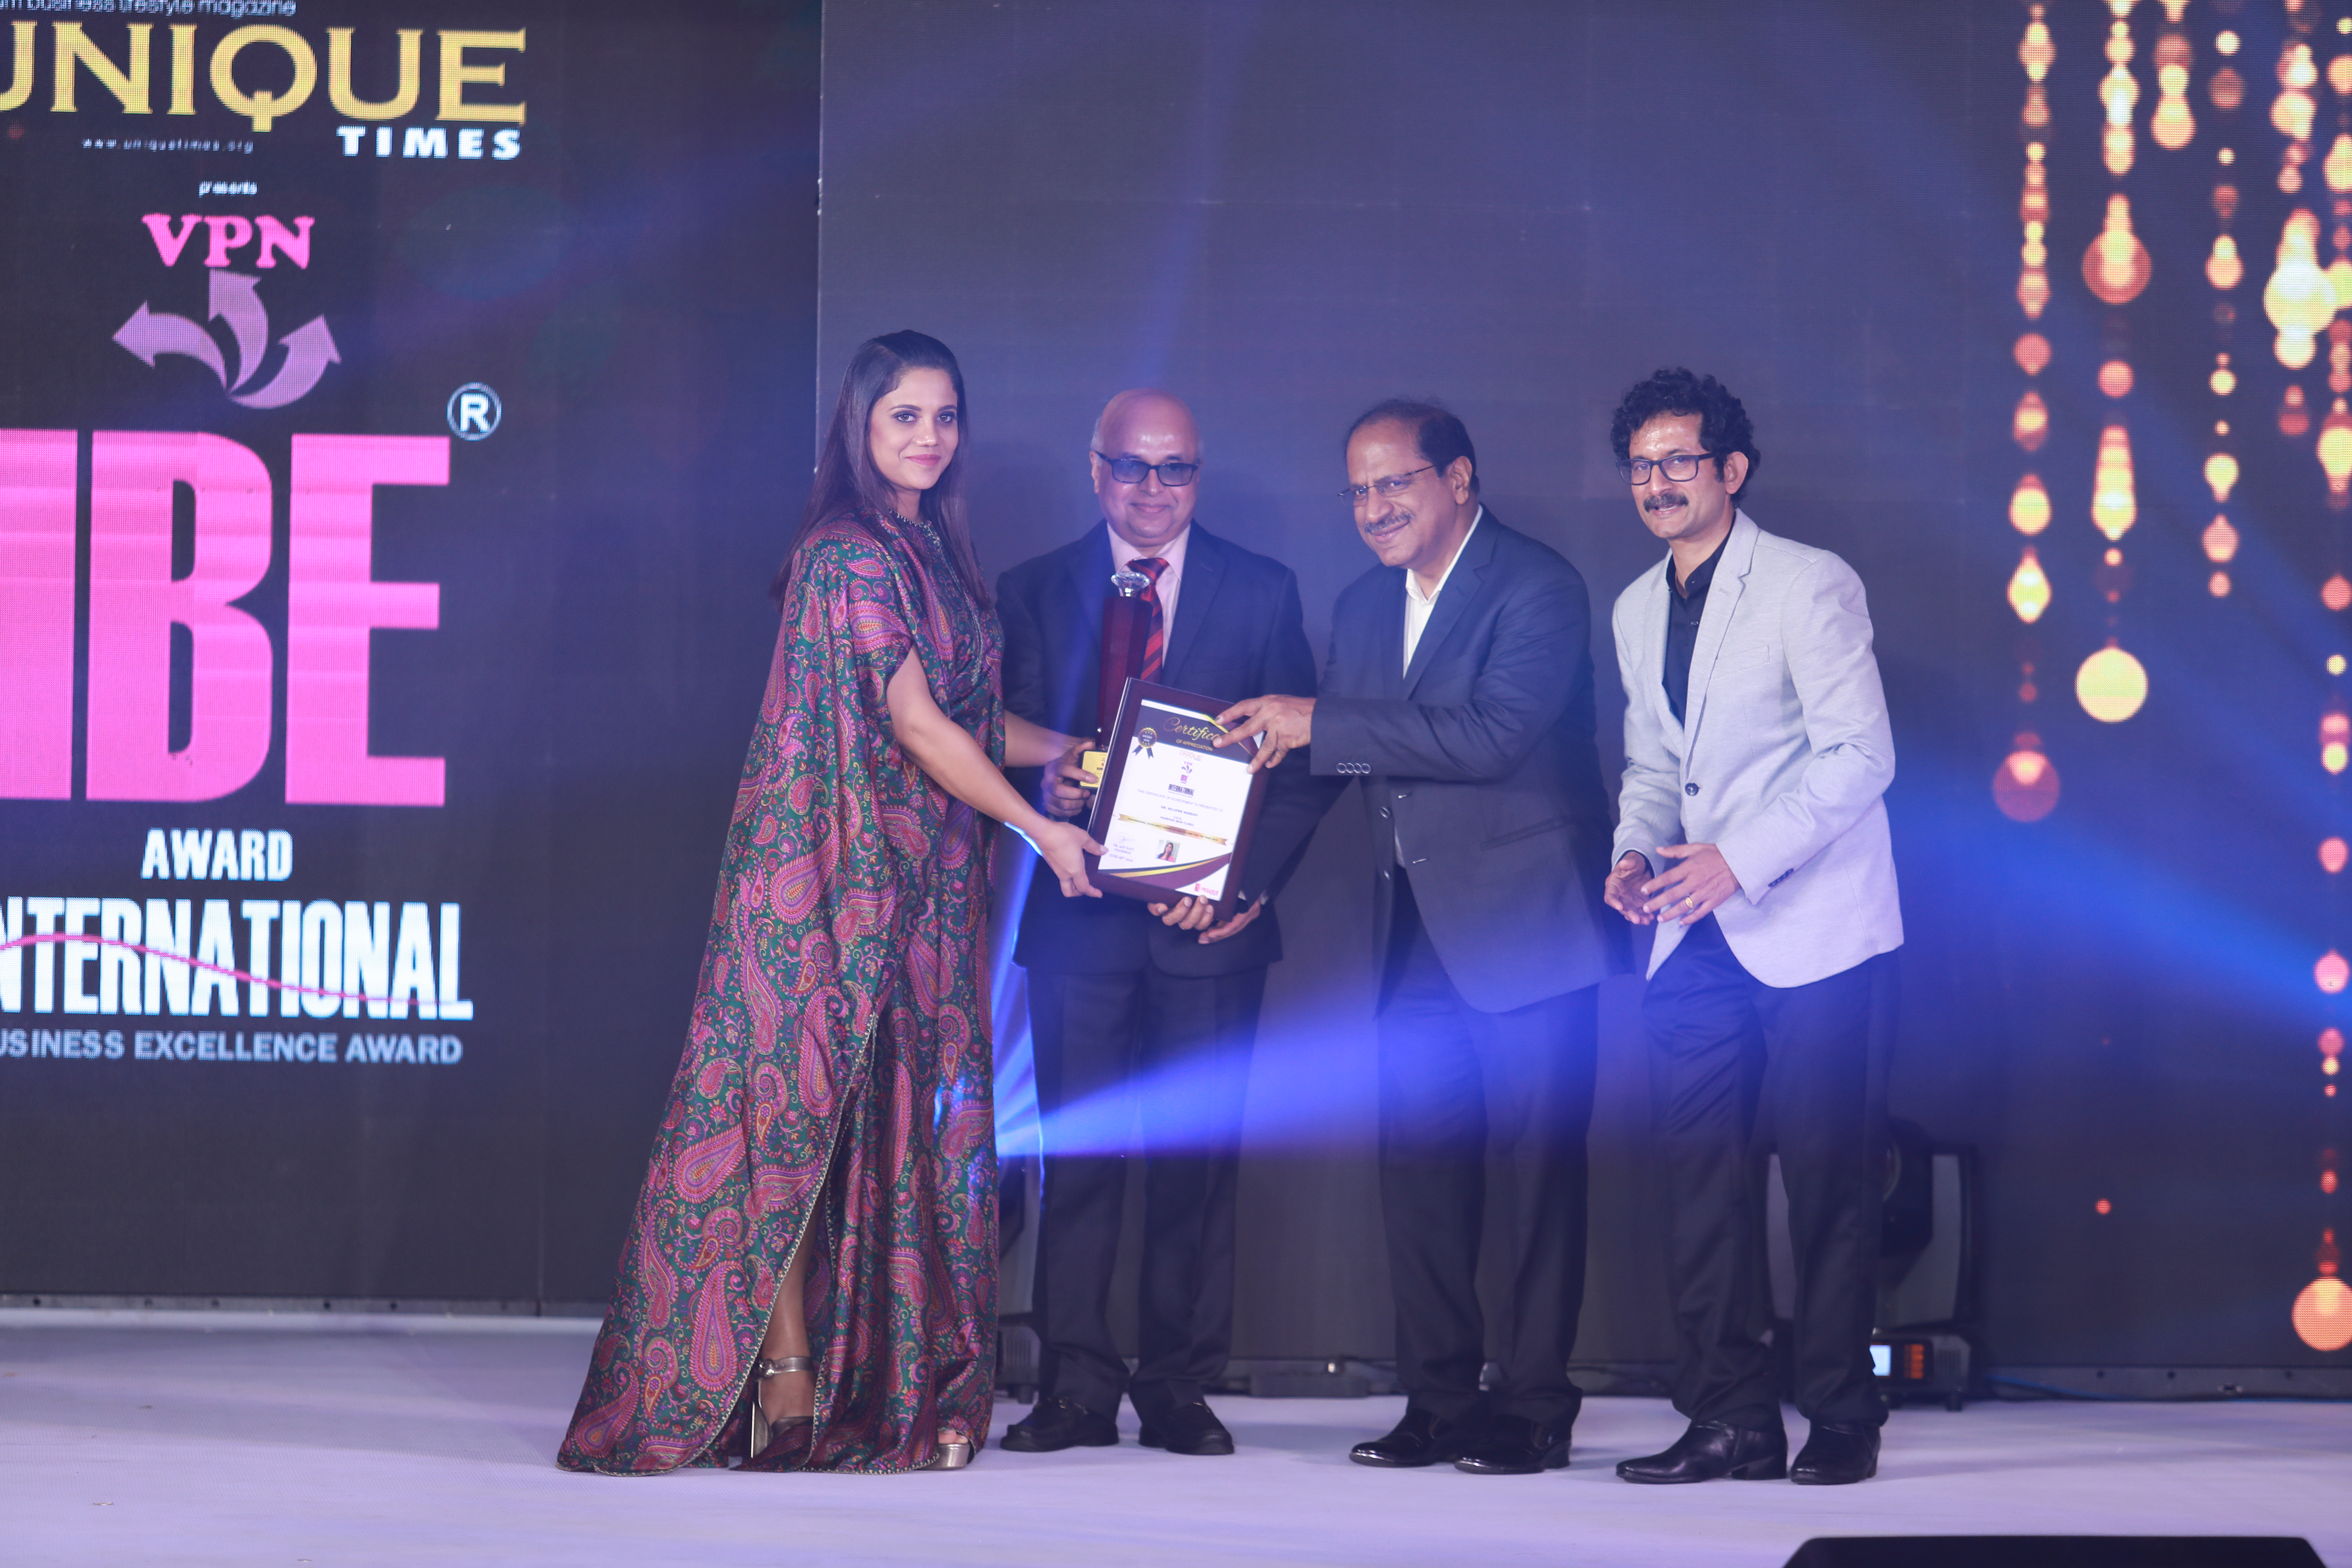 Dr. Nilufer Sheriff – Professional Excellency Award in Health Care